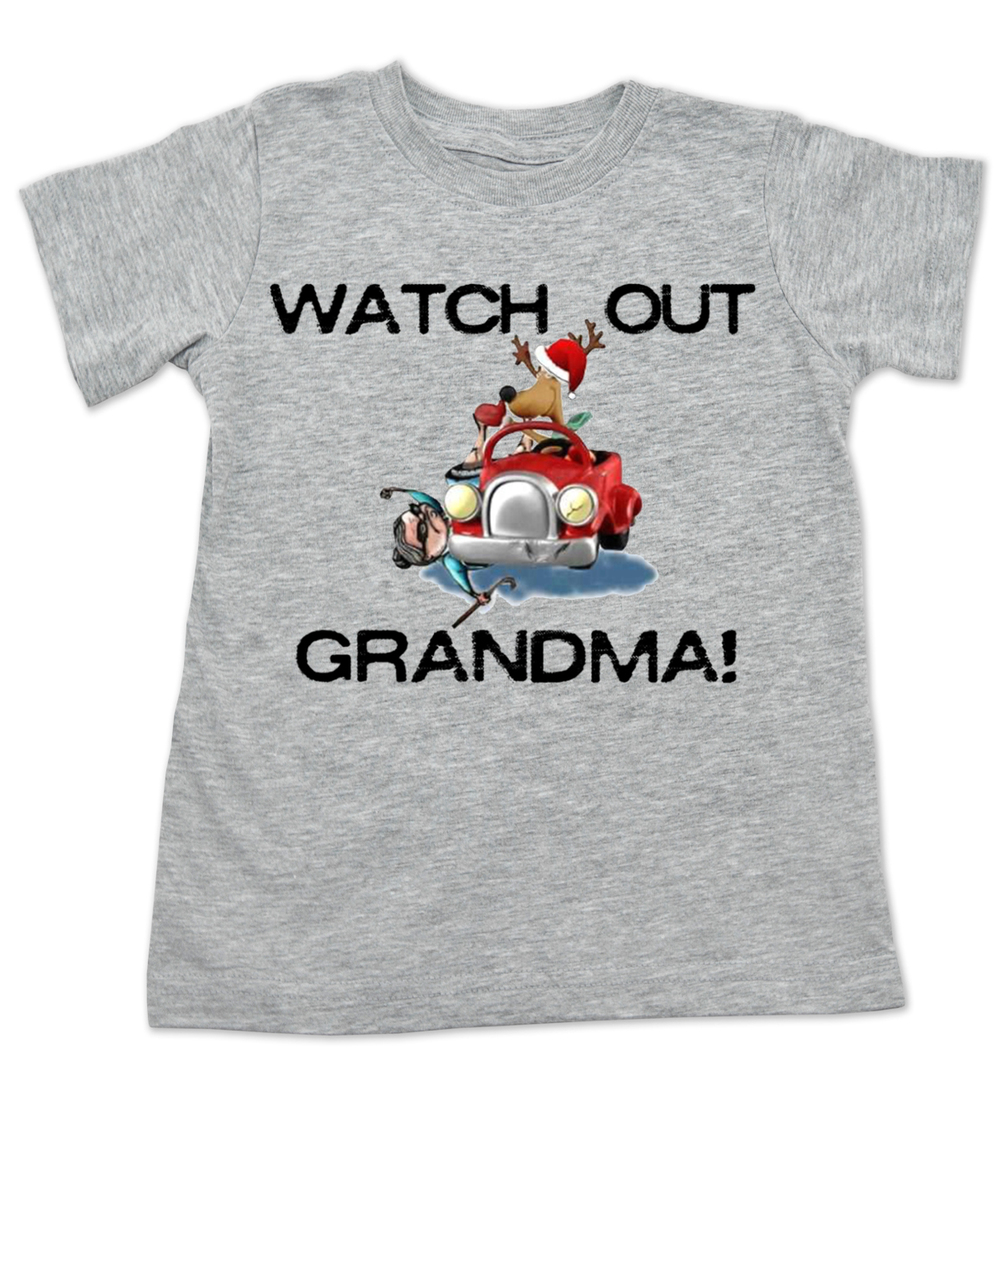 Watch Out Grandma Toddler Shirt